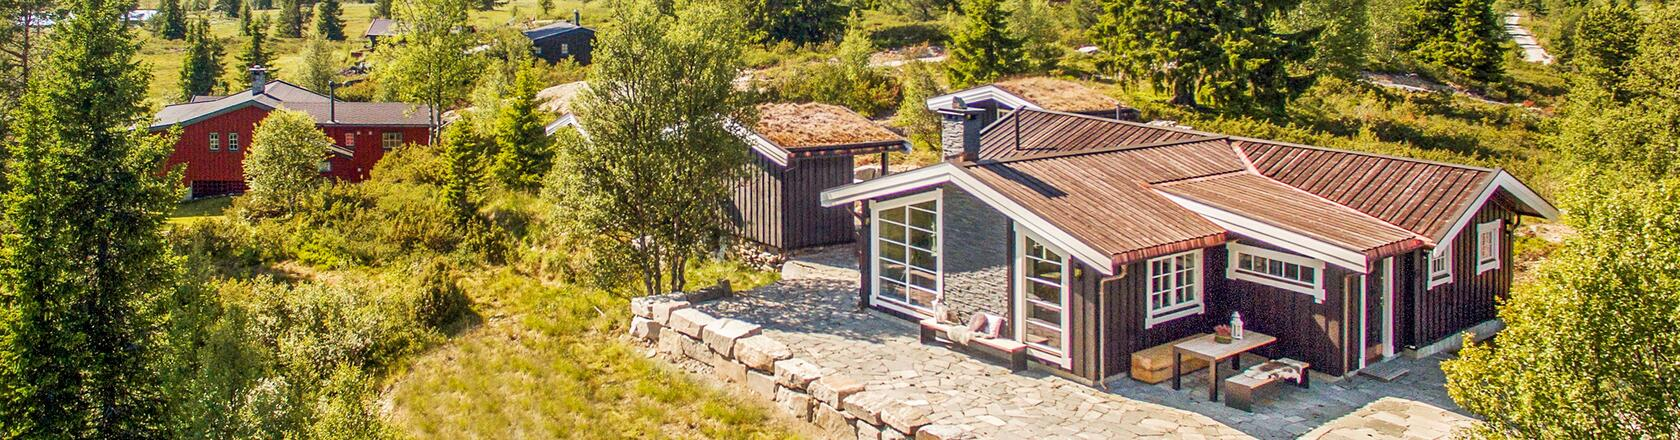 Central Norway/Trøndelag in Norway — Rent a holiday home with DanCenter